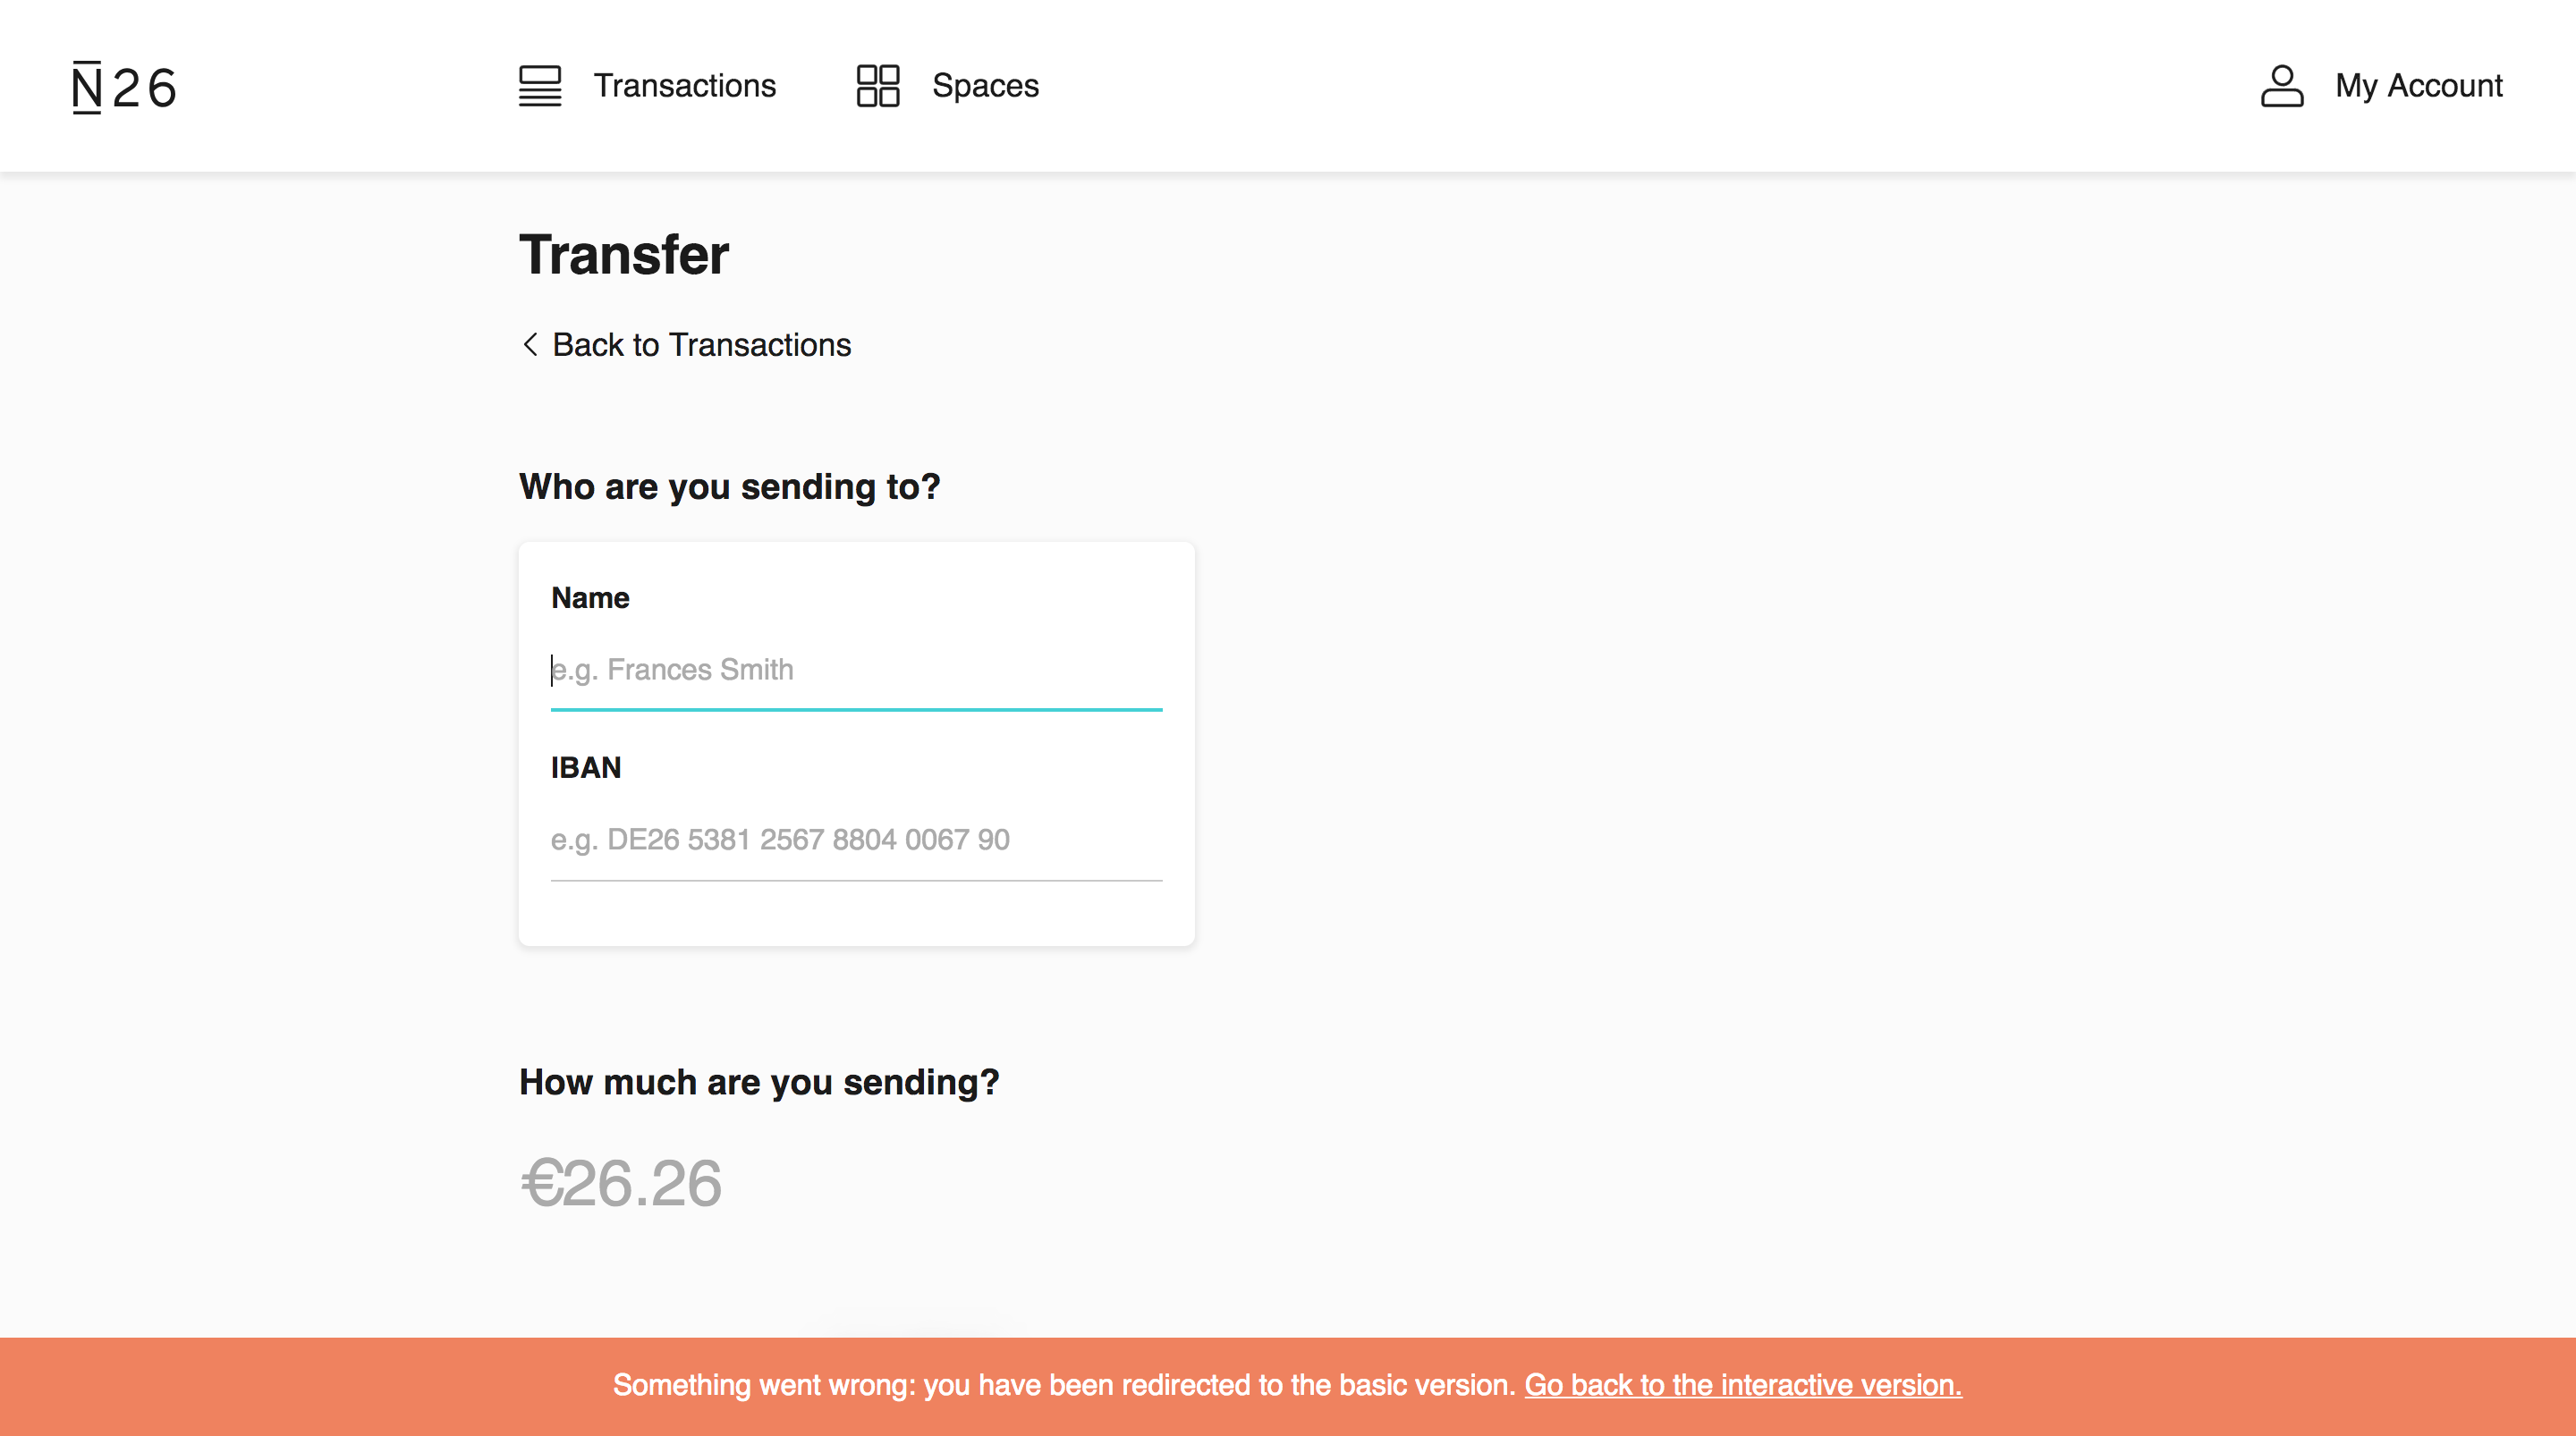 Transfer page with an error banner about being redirected to the basic version of the site